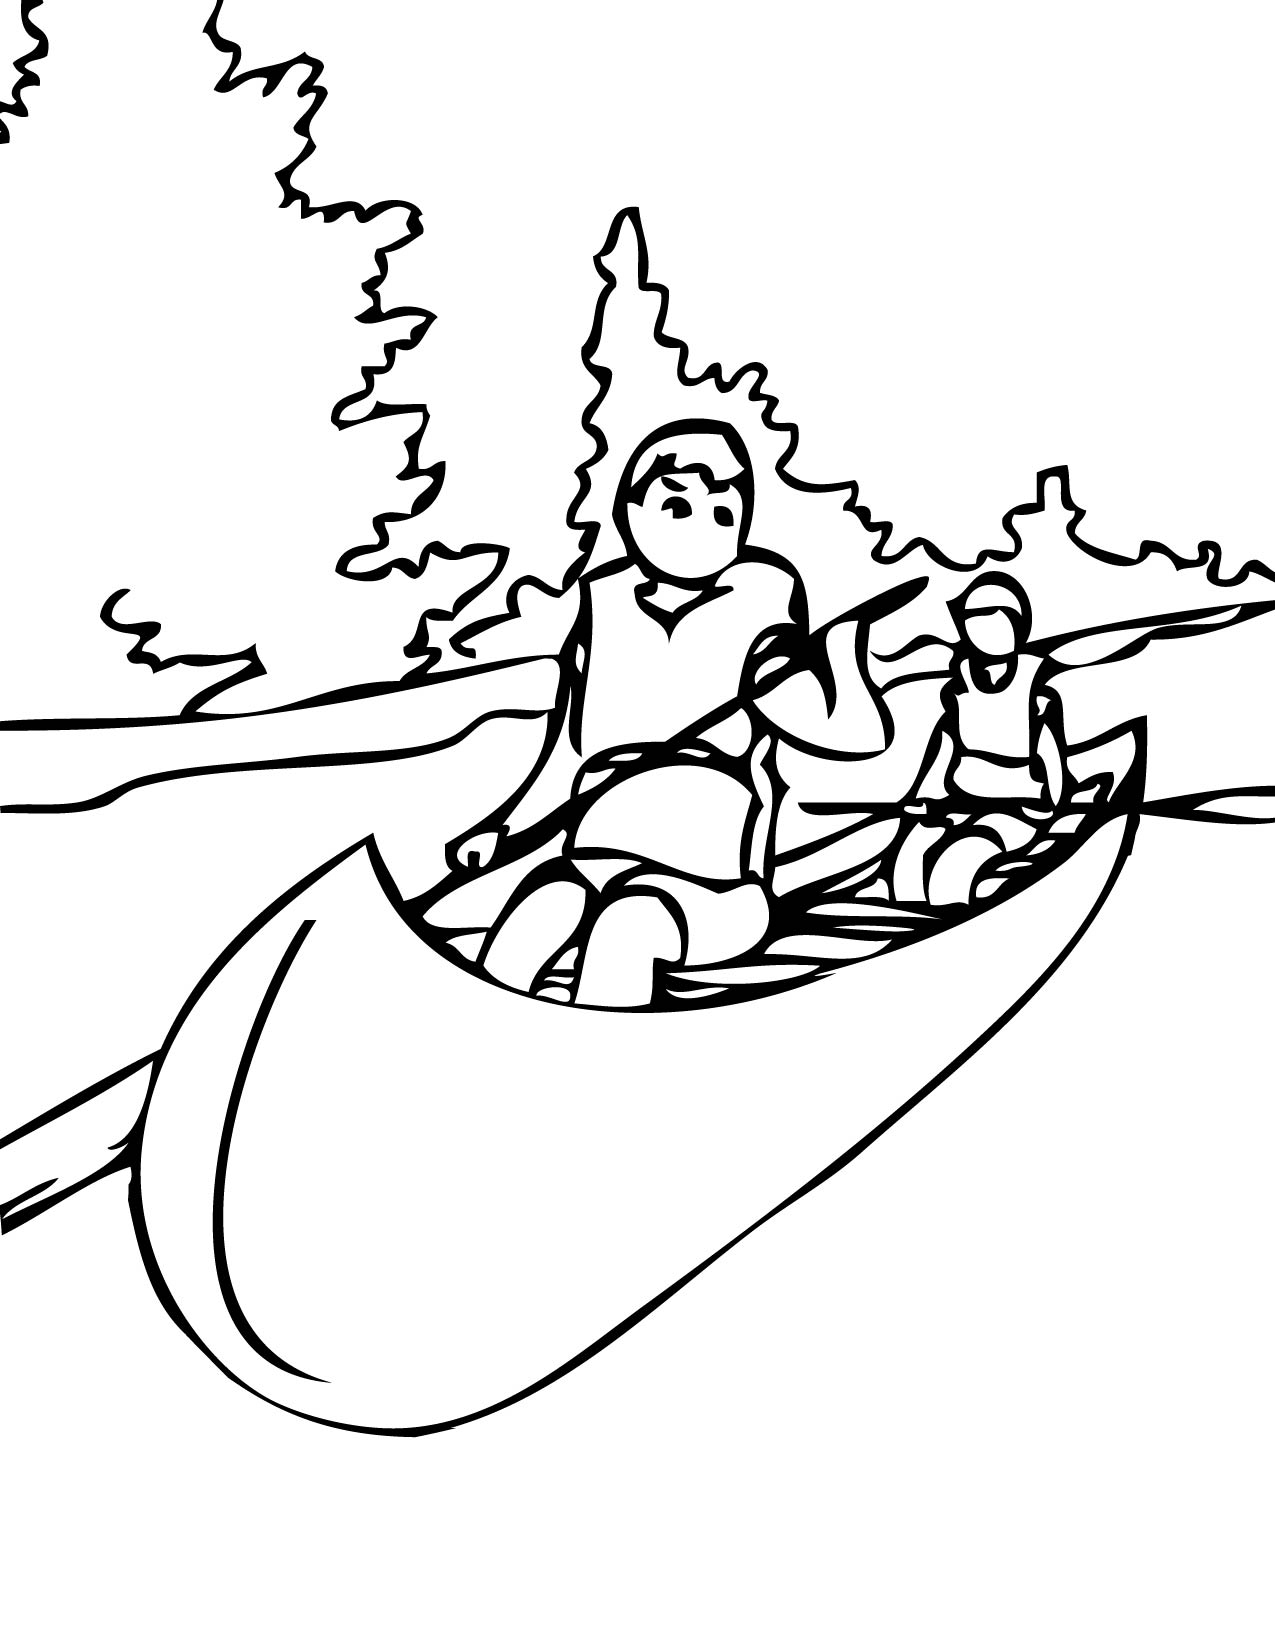 Water Sports Coloring Page